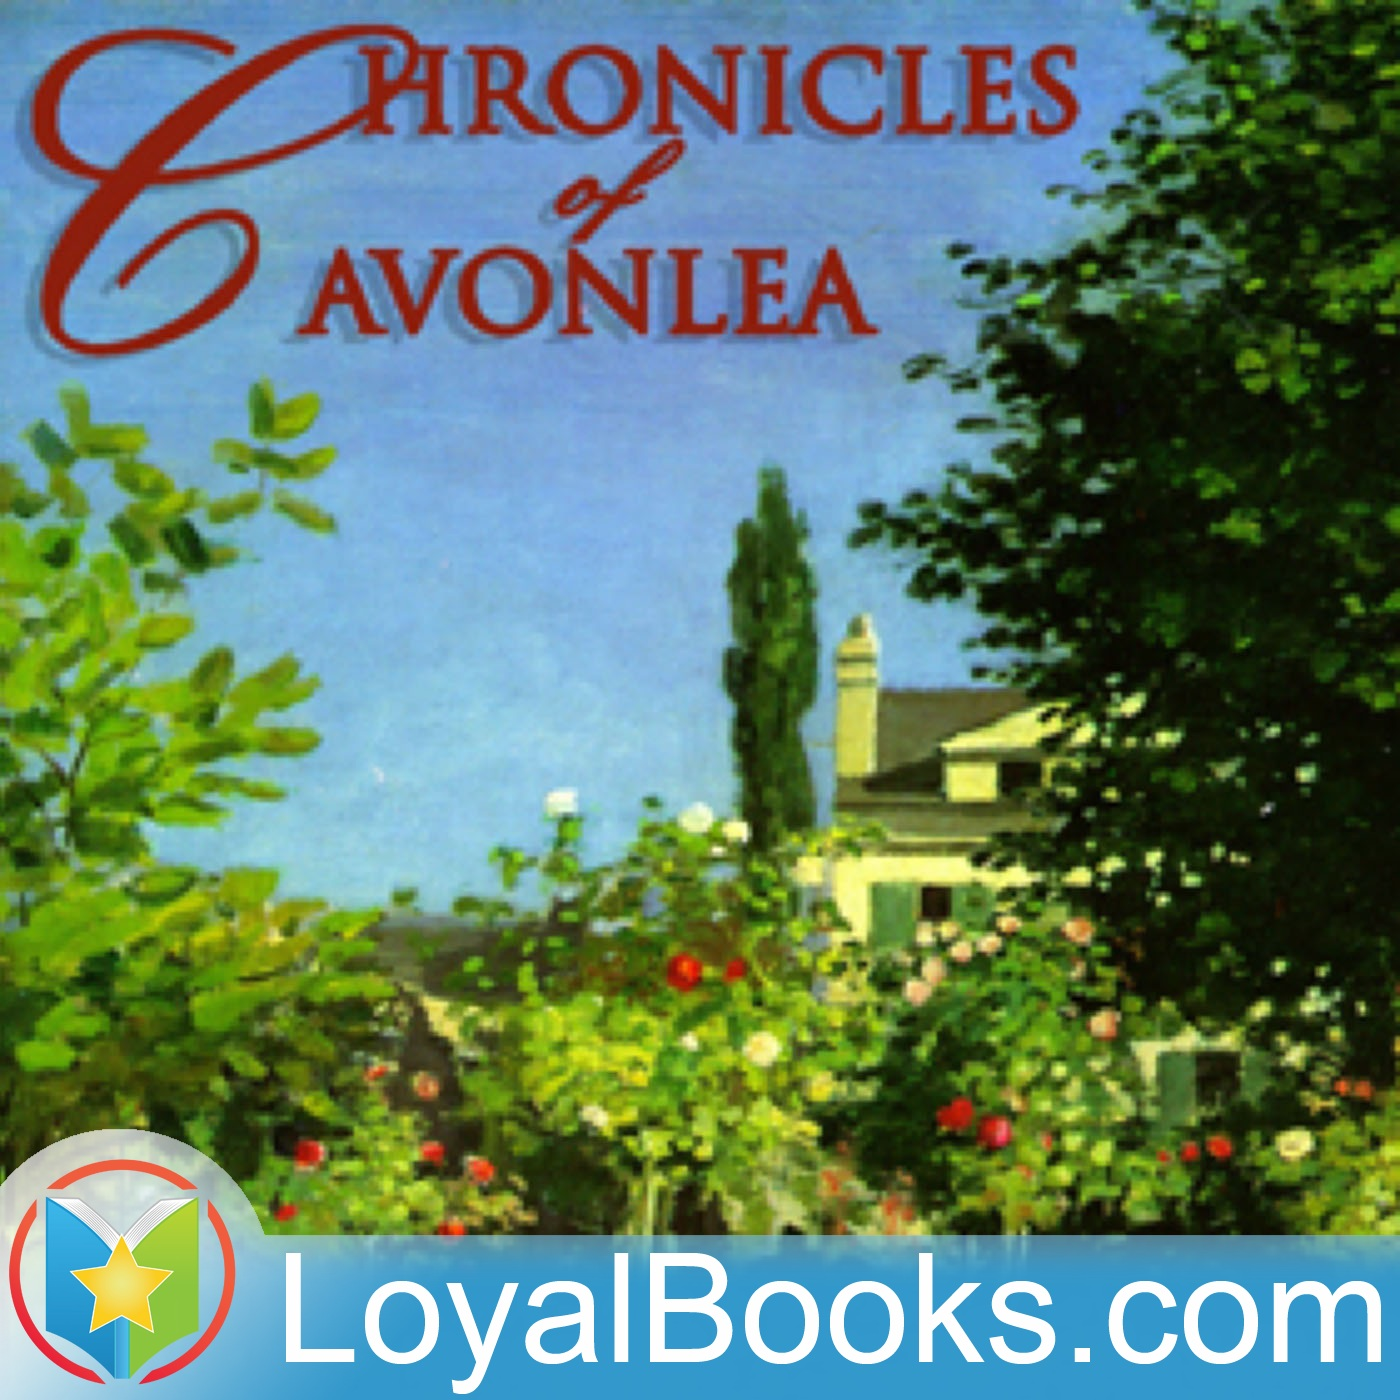 <![CDATA[Chronicles of Avonlea by Lucy Maud Montgomery]]>